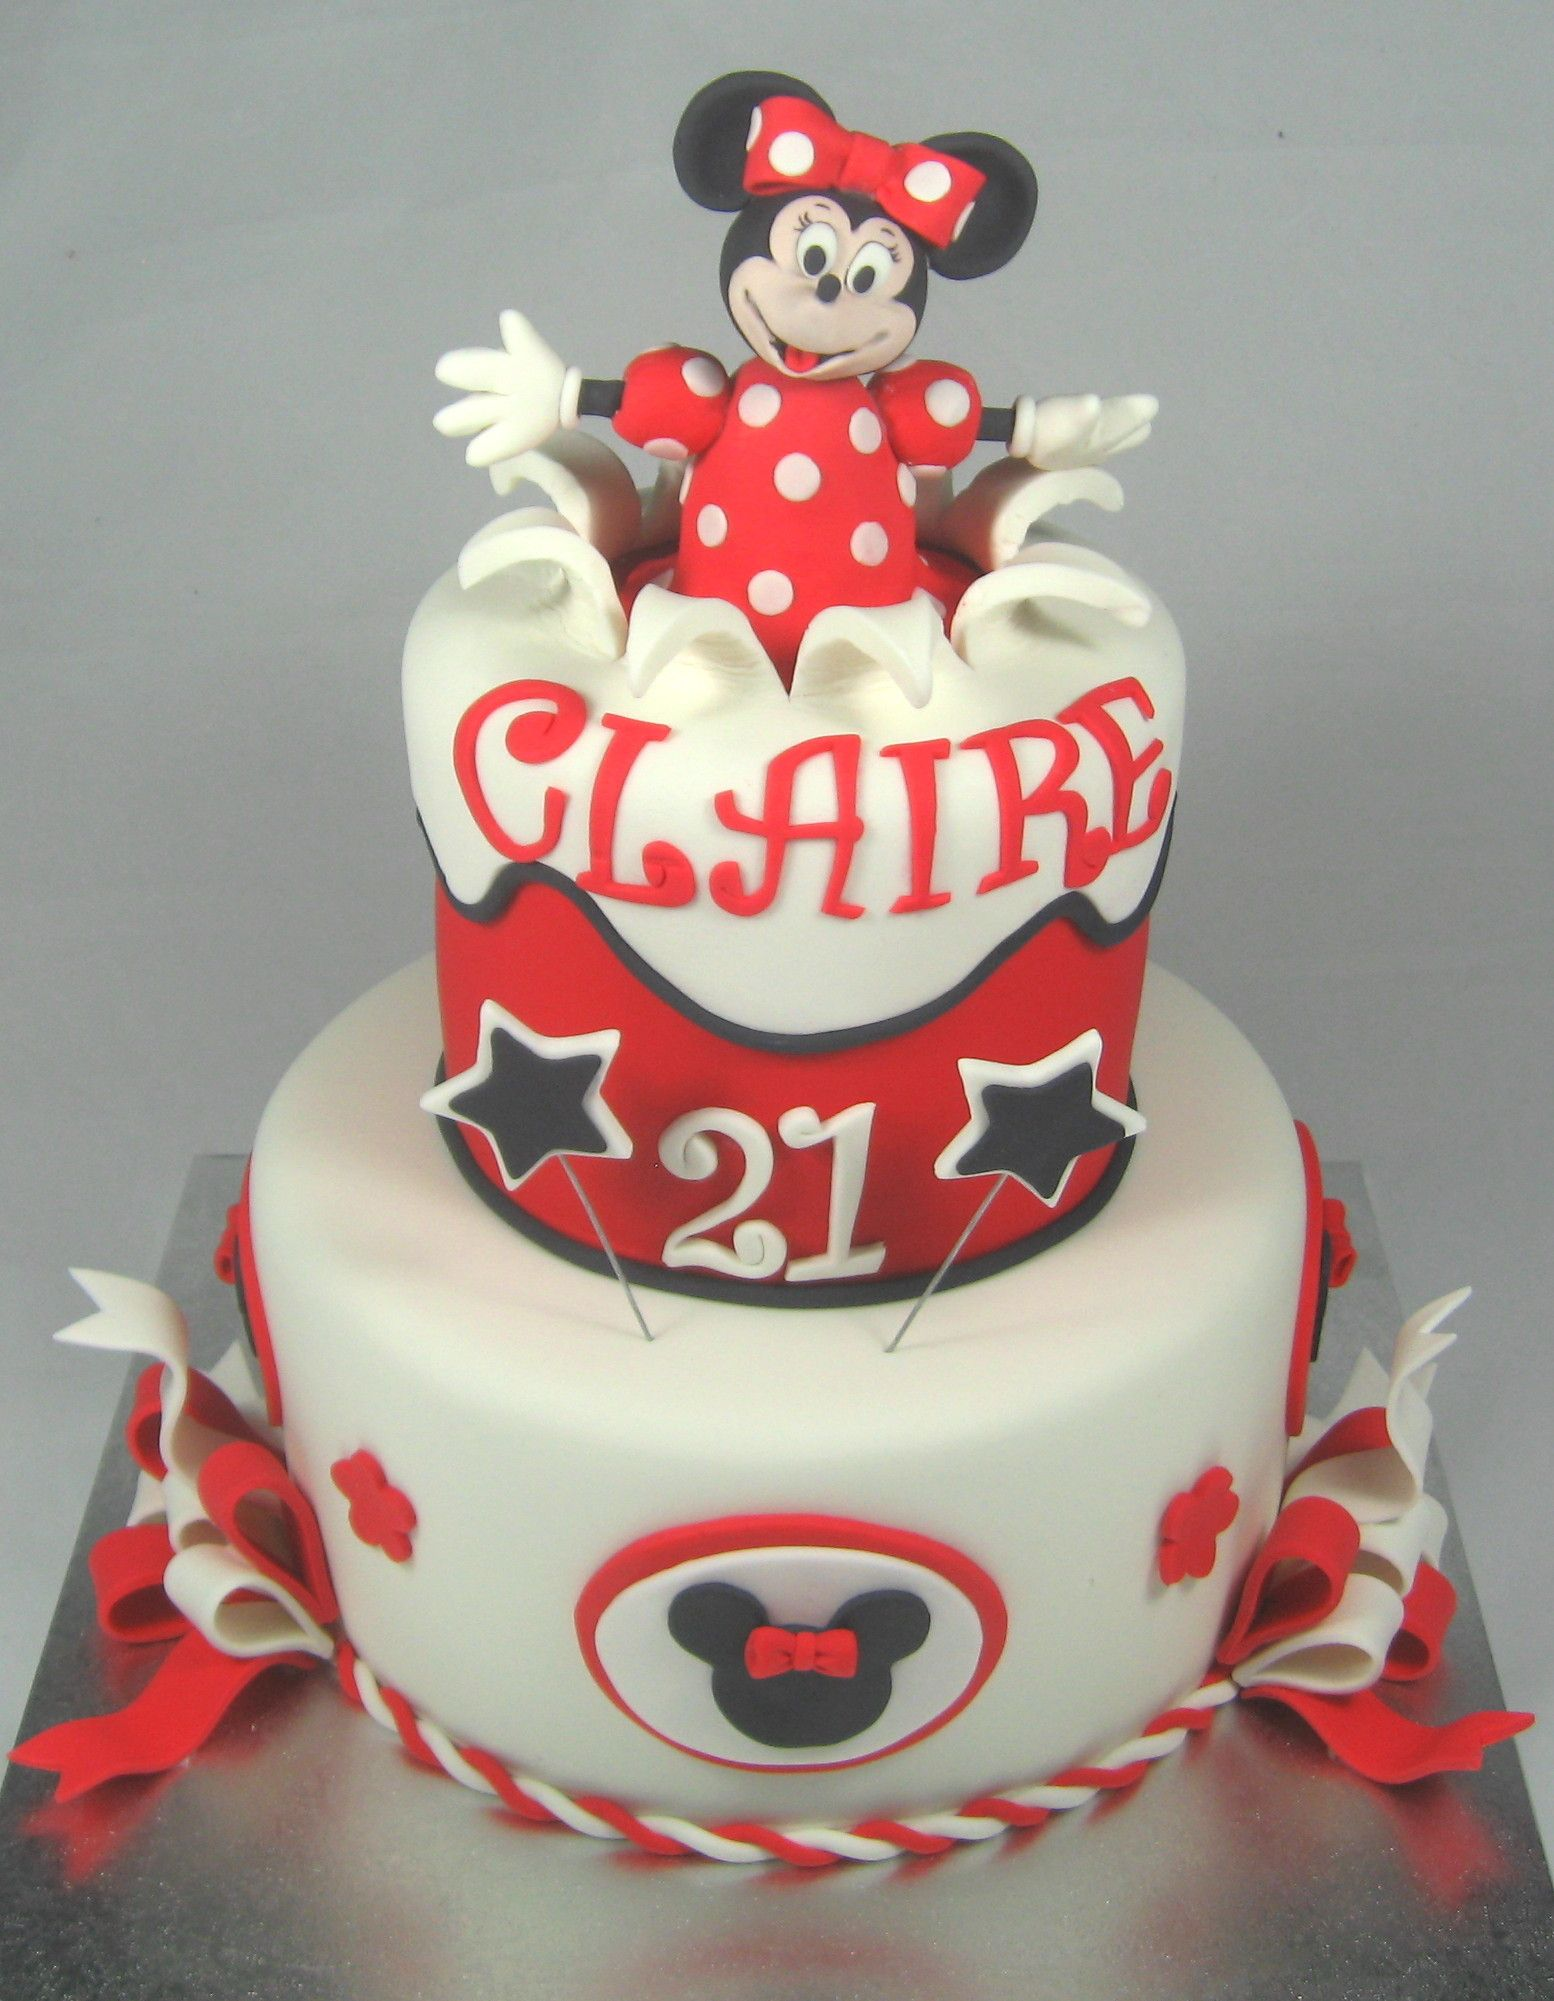 Red WhiteBlack Minnie Mouse cake by httpswwwfacebookcompages